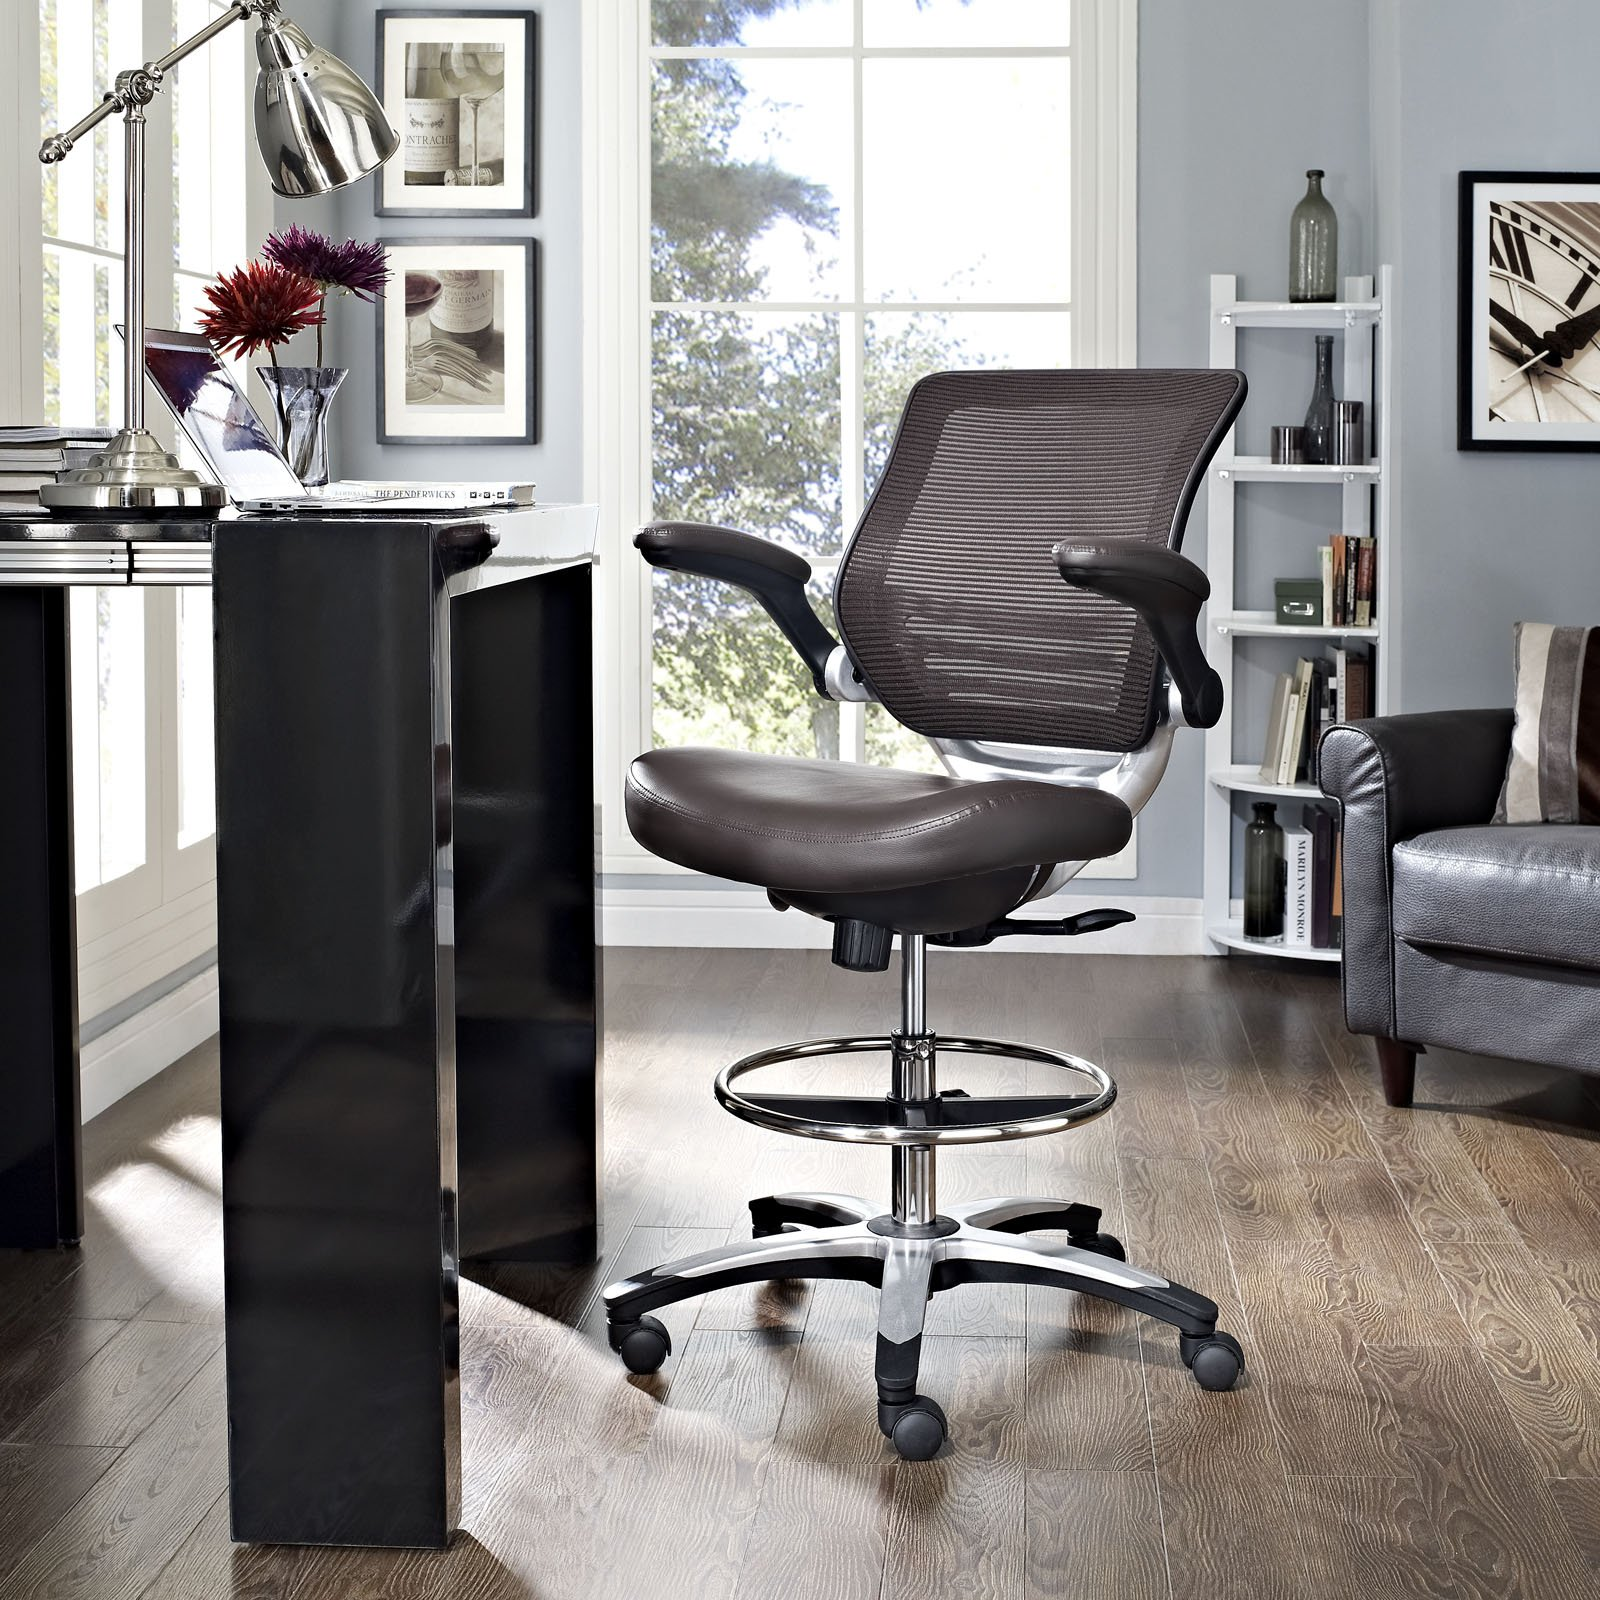 Modway Edge Drafting Chair In Brown - Reception Desk Chair - Tall Office Chair For Adjustable Standing Desks - Flip-Up Arm Drafting Table Chair by Modway (Image #6)